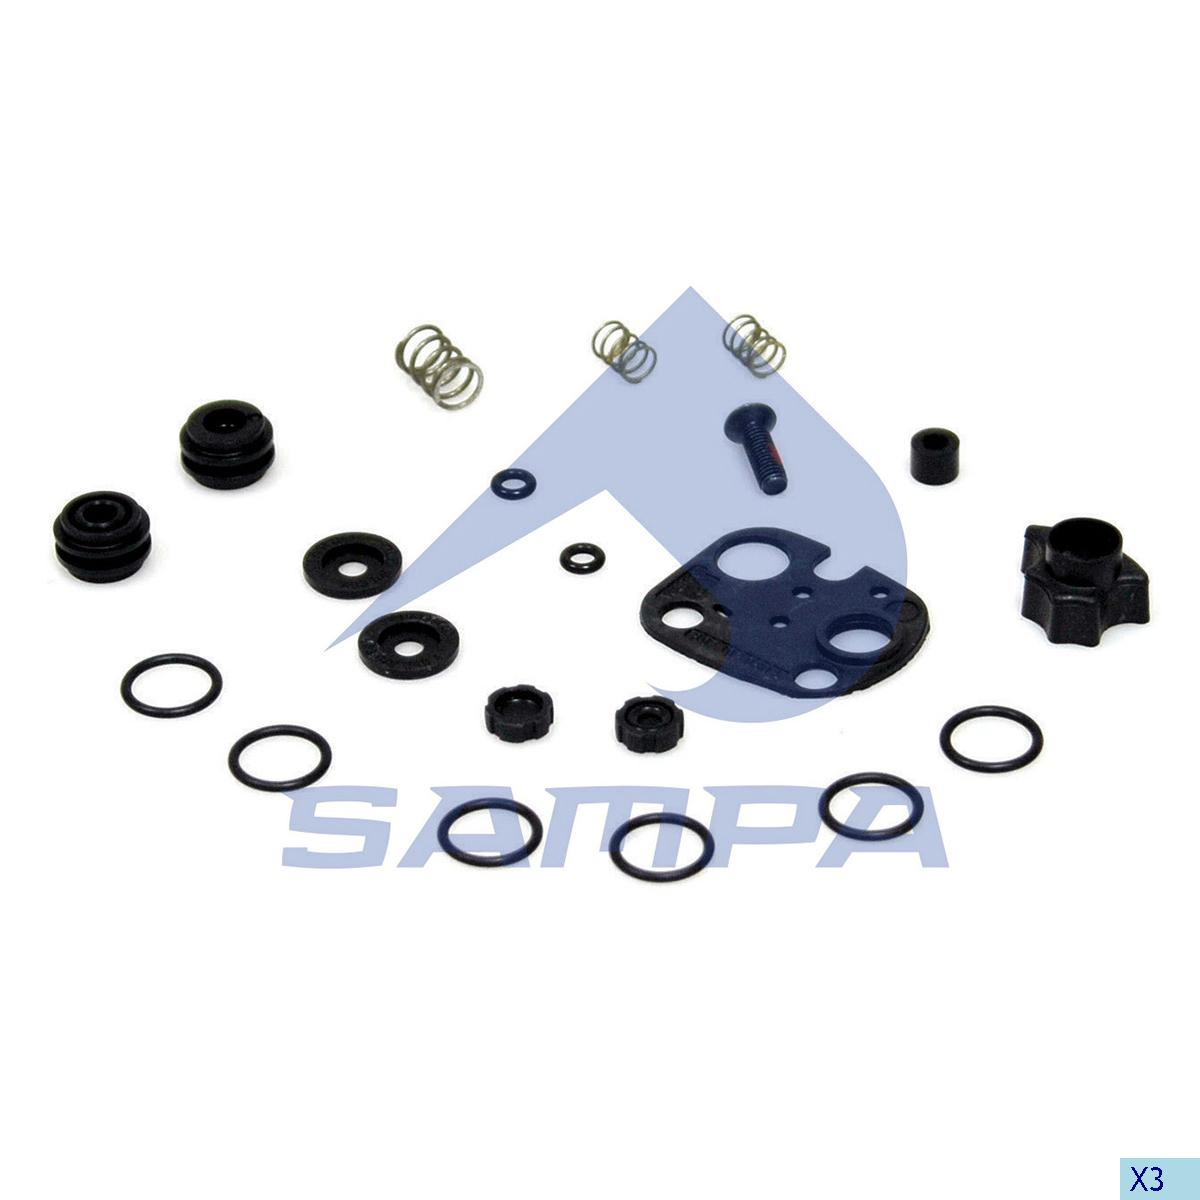 Repair Kit, Gear Shift, Daf, Gear Box